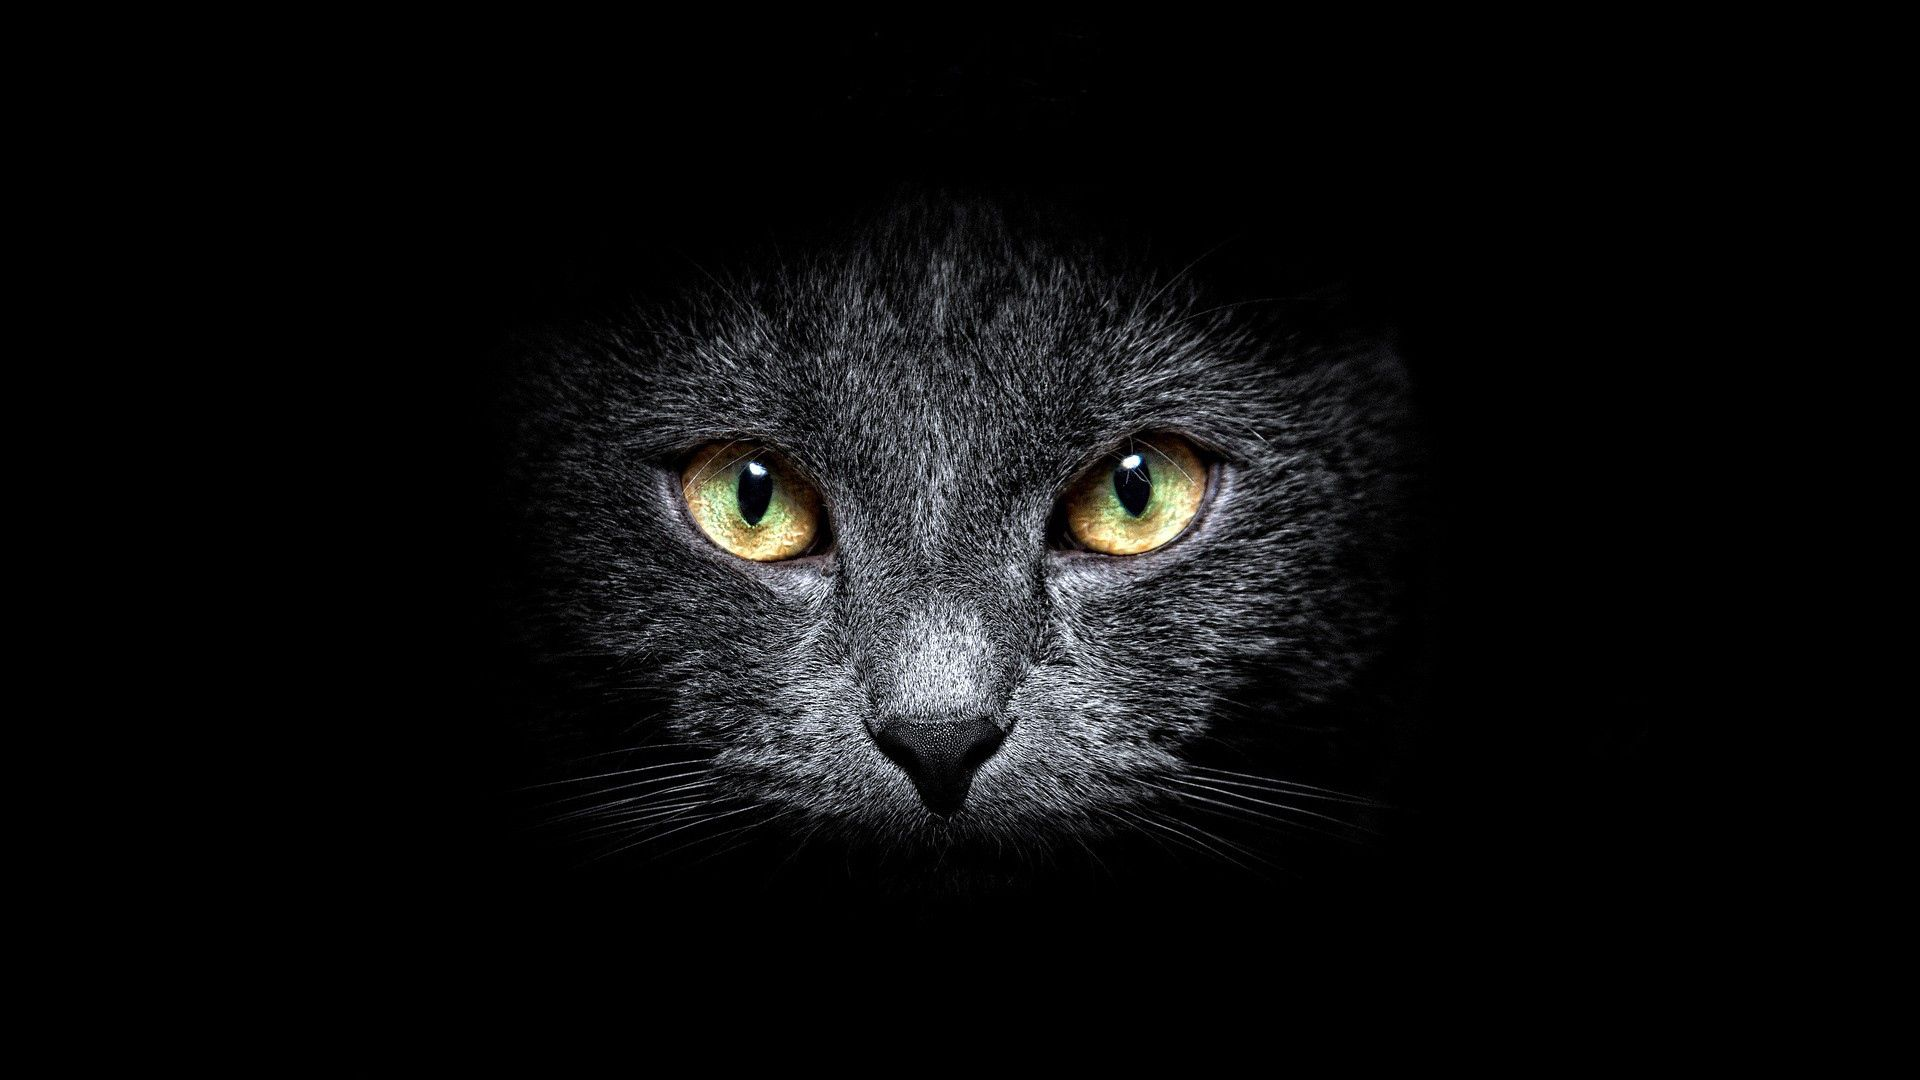 138791 download wallpaper Dark, Cat, Muzzle, Sight, Opinion, Black Background screensavers and pictures for free